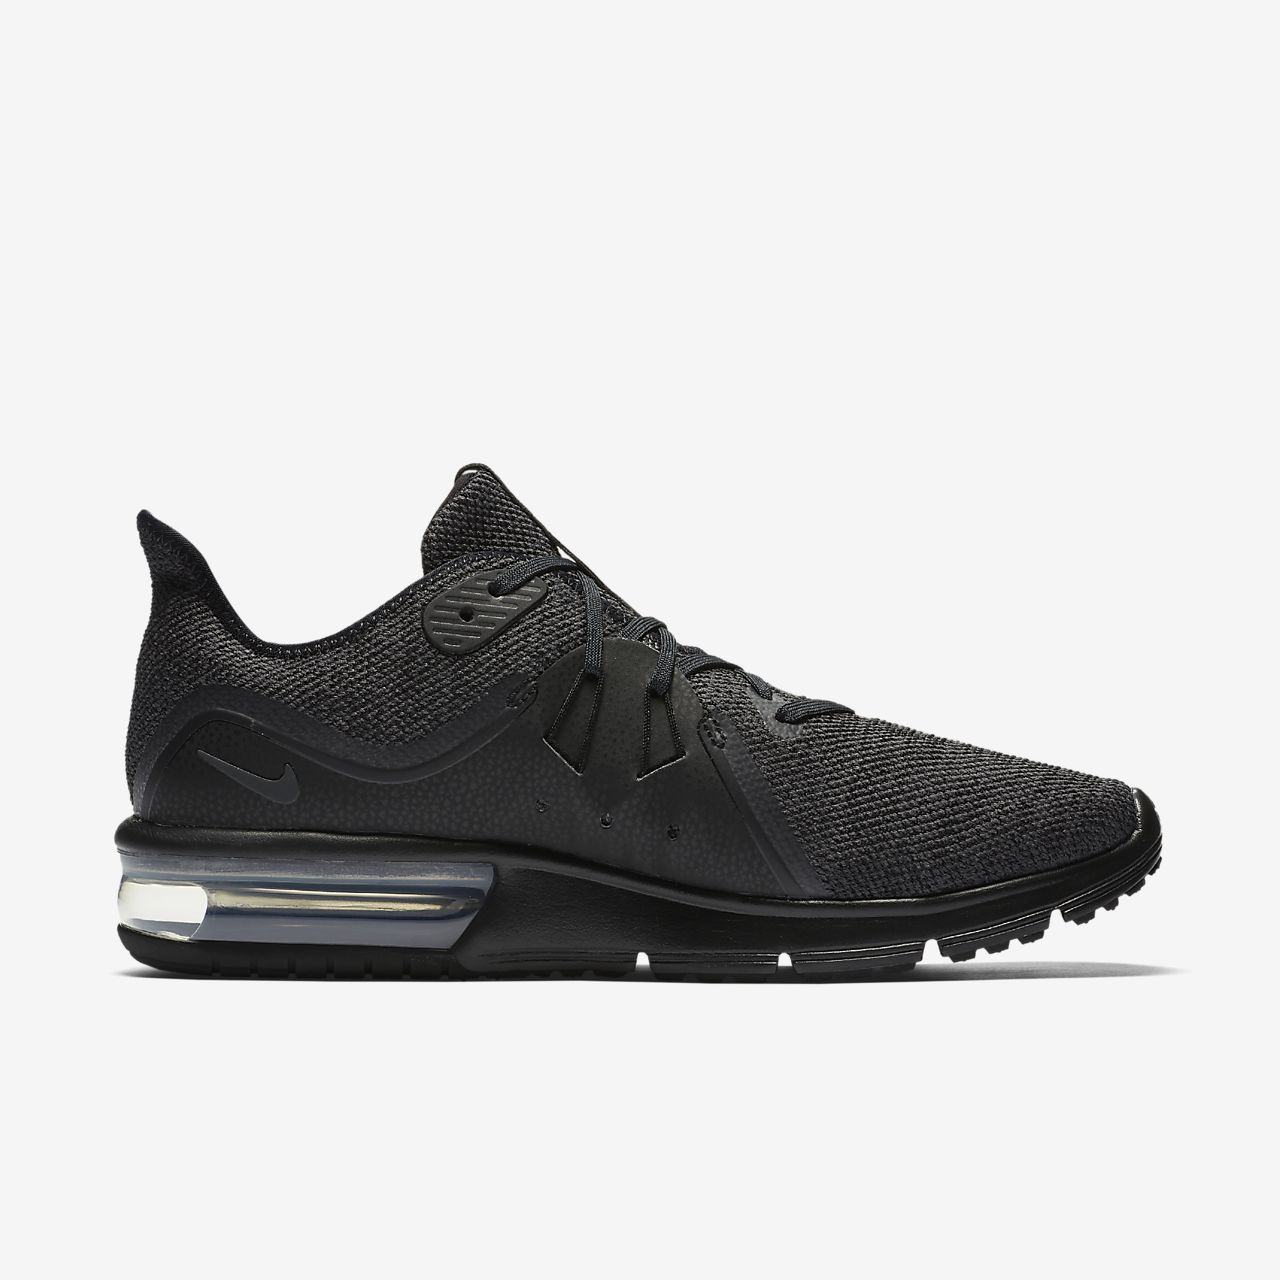 nike air max 2017 anthracite nz